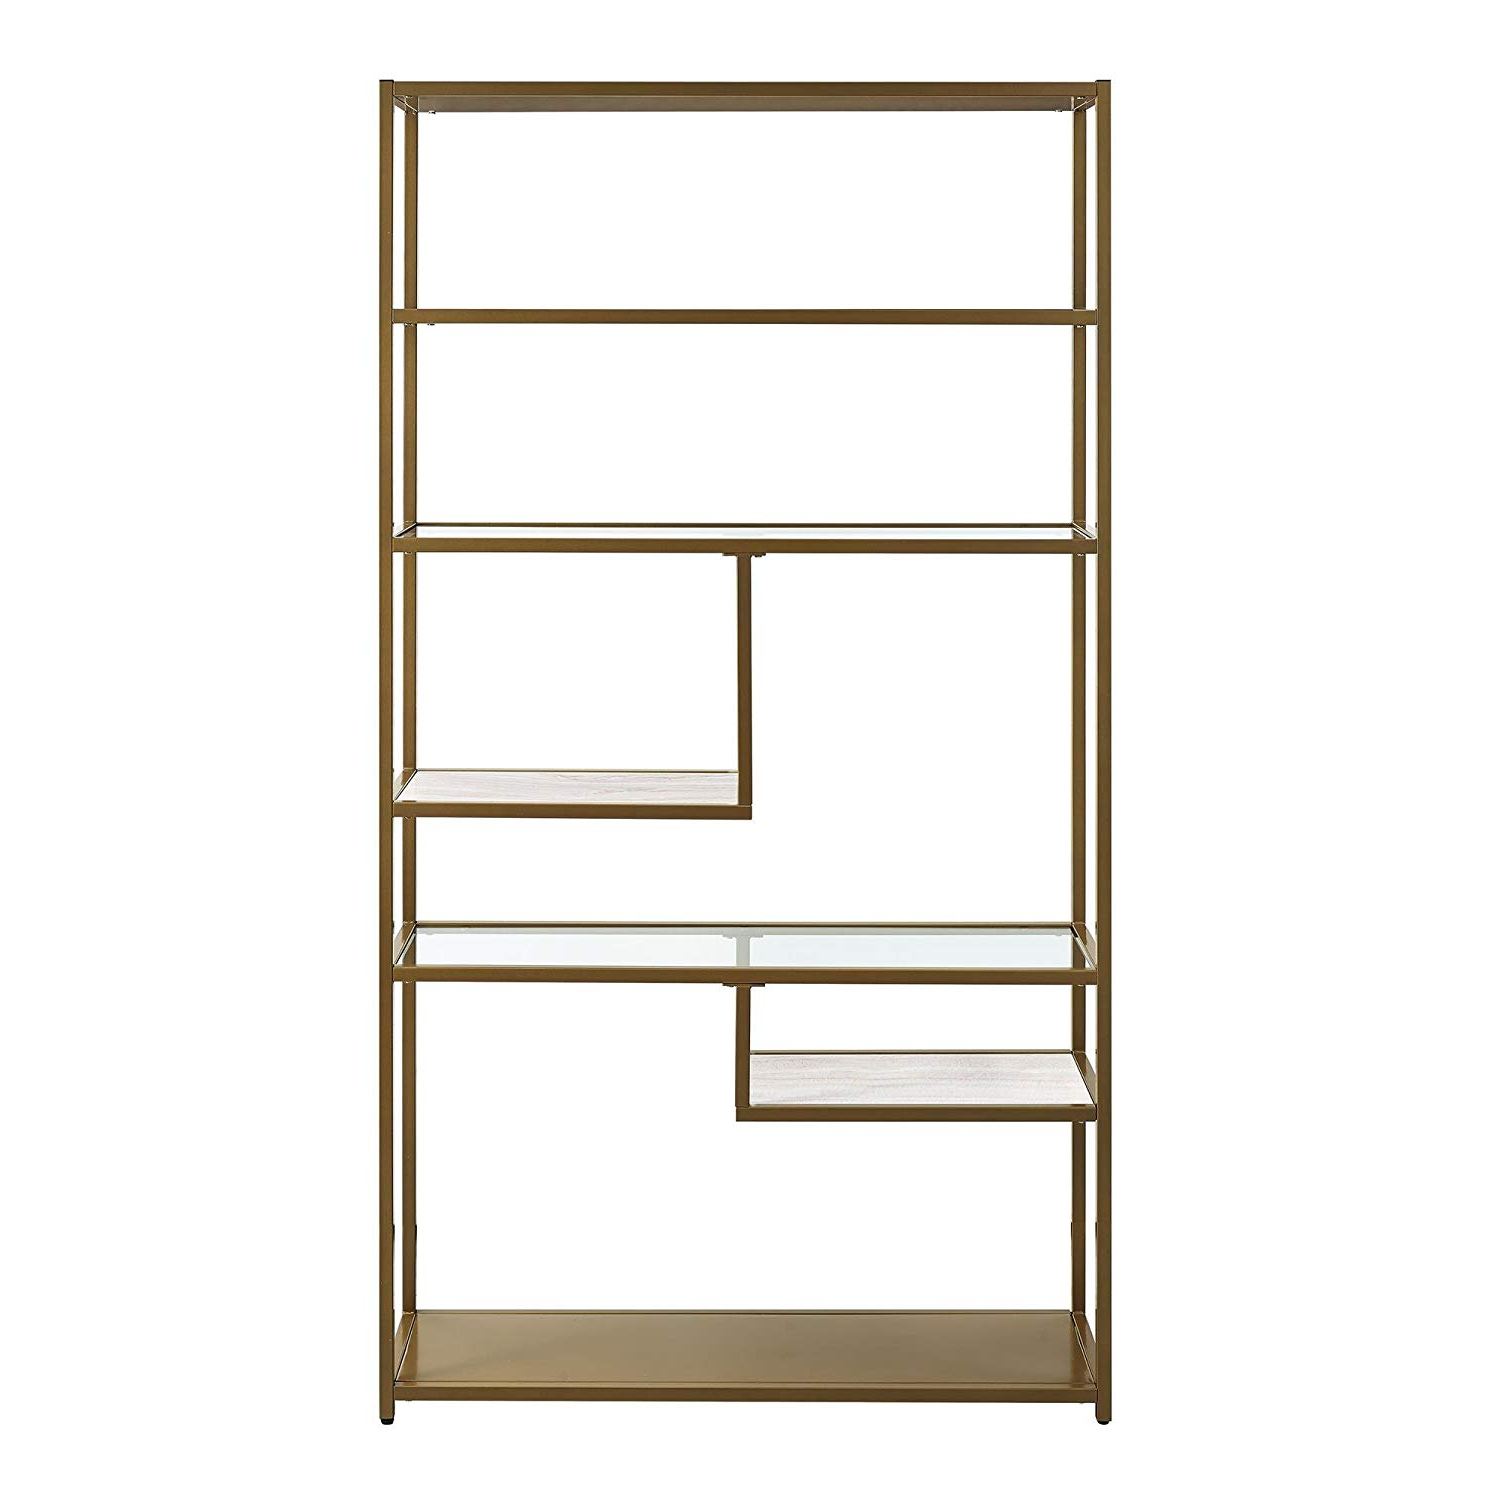 Dorel Living Moriah Geometric Bookcase Etagere, Soft Brass Pertaining To Latest Chrysanthos Etagere Bookcases (View 16 of 20)